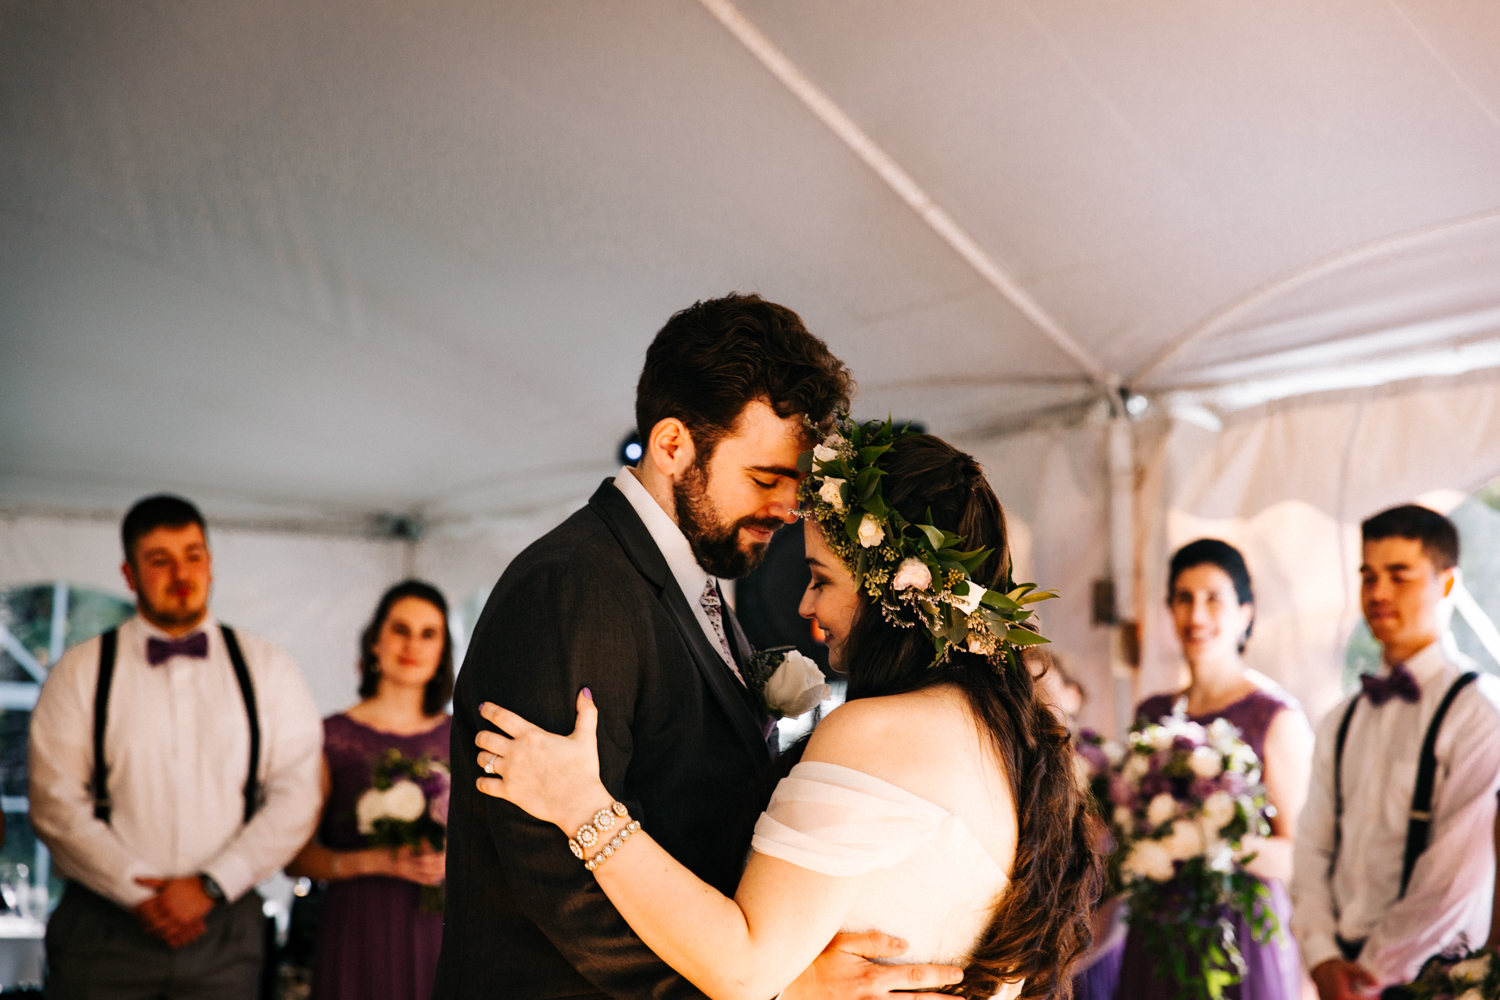 first-dance-wedding-gwyn-careg-inn-pomfret-connecticut-new-england-massachusetts-rhode-island.jpg